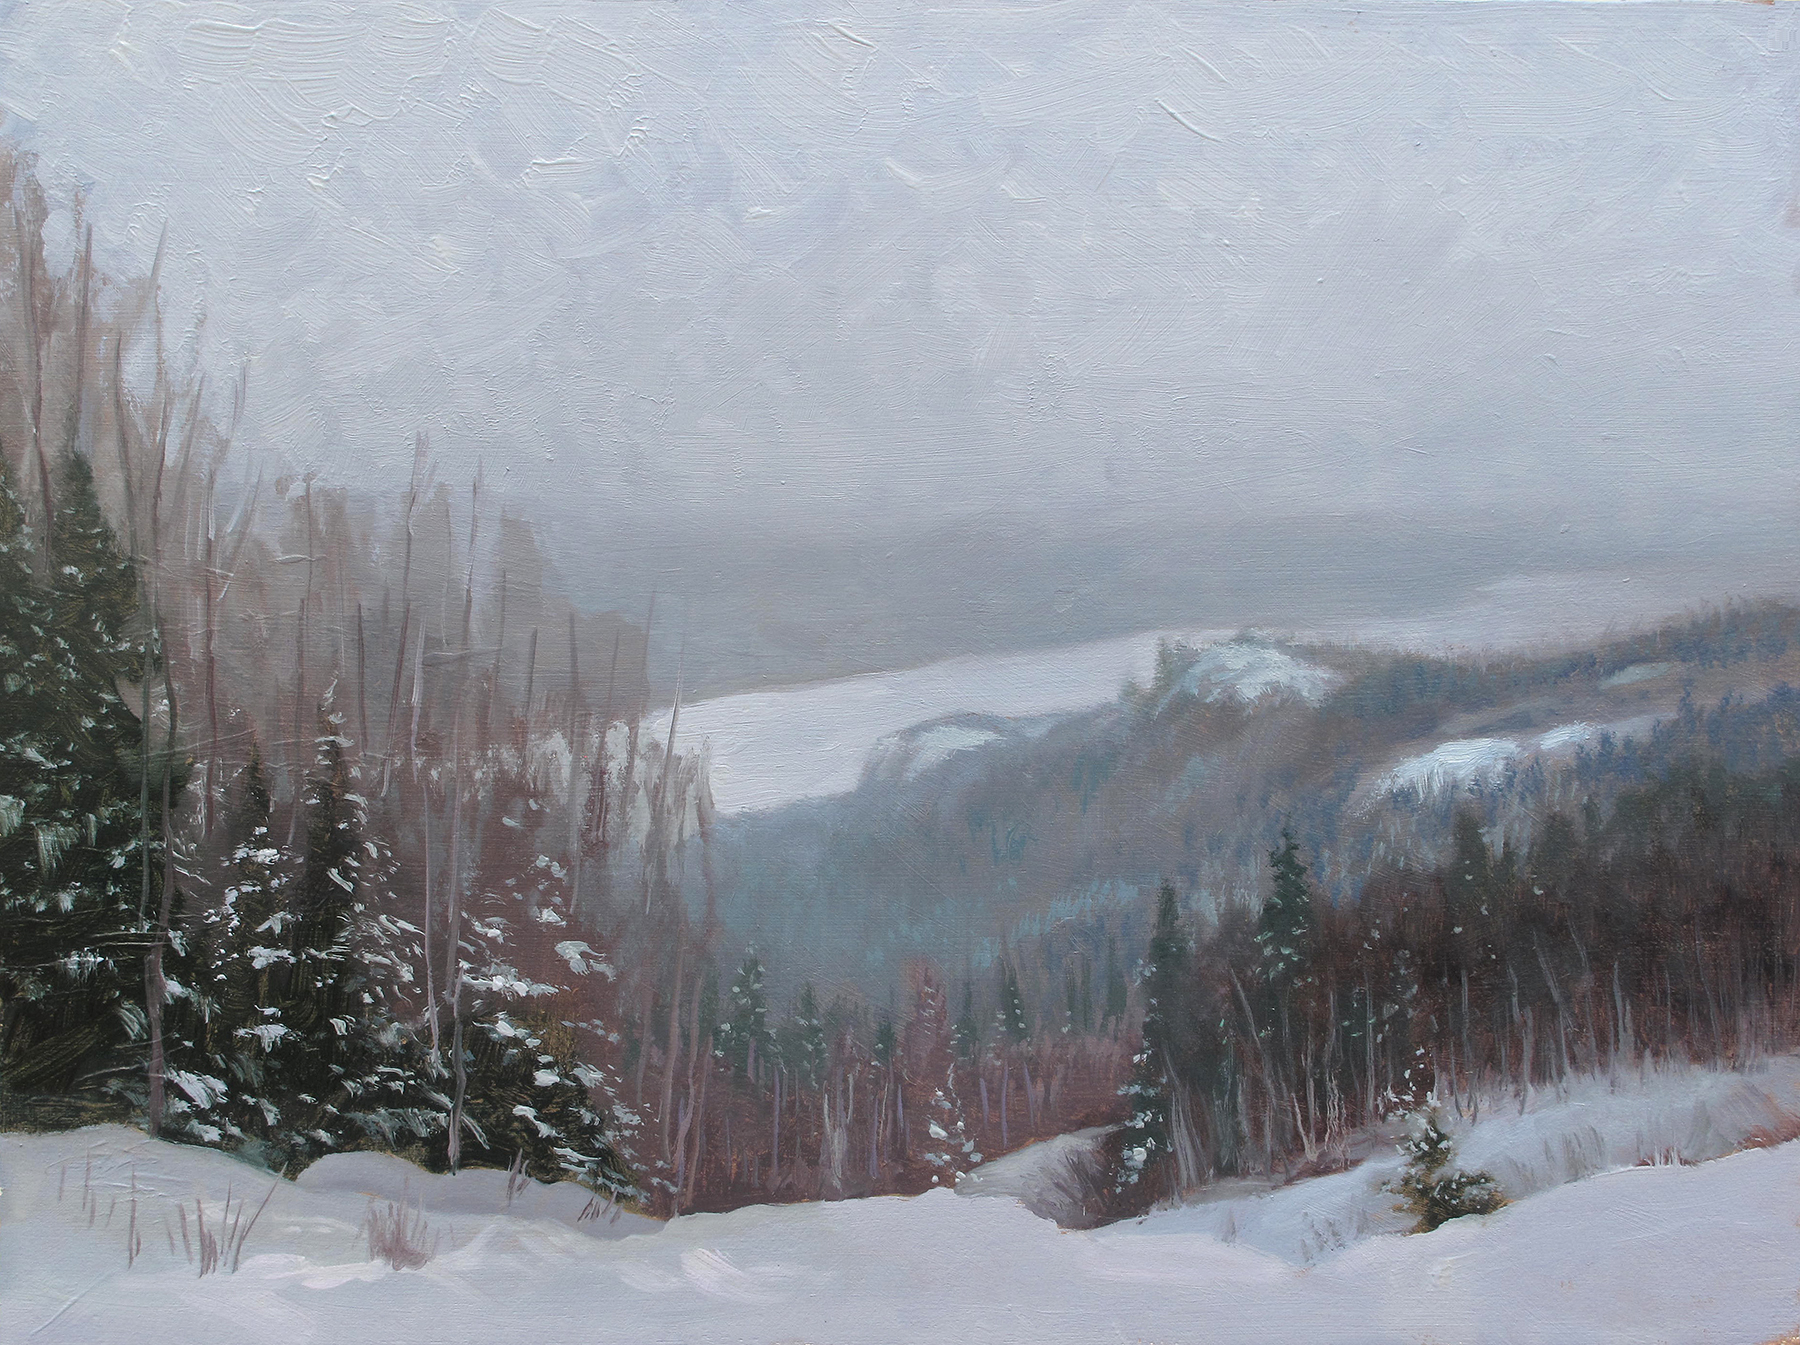 Snowy Vista, Loon Lake  12 x 16 oil on panel  This is a view of Loon Lake from the Gunflint Trail in northern Minnesota. This light, falling snow shrouded the lake and the distance. The northeastern part of the state offers more elevation changes than the rest of the state. It's nice to see space even through this thick, misty atmosphere.